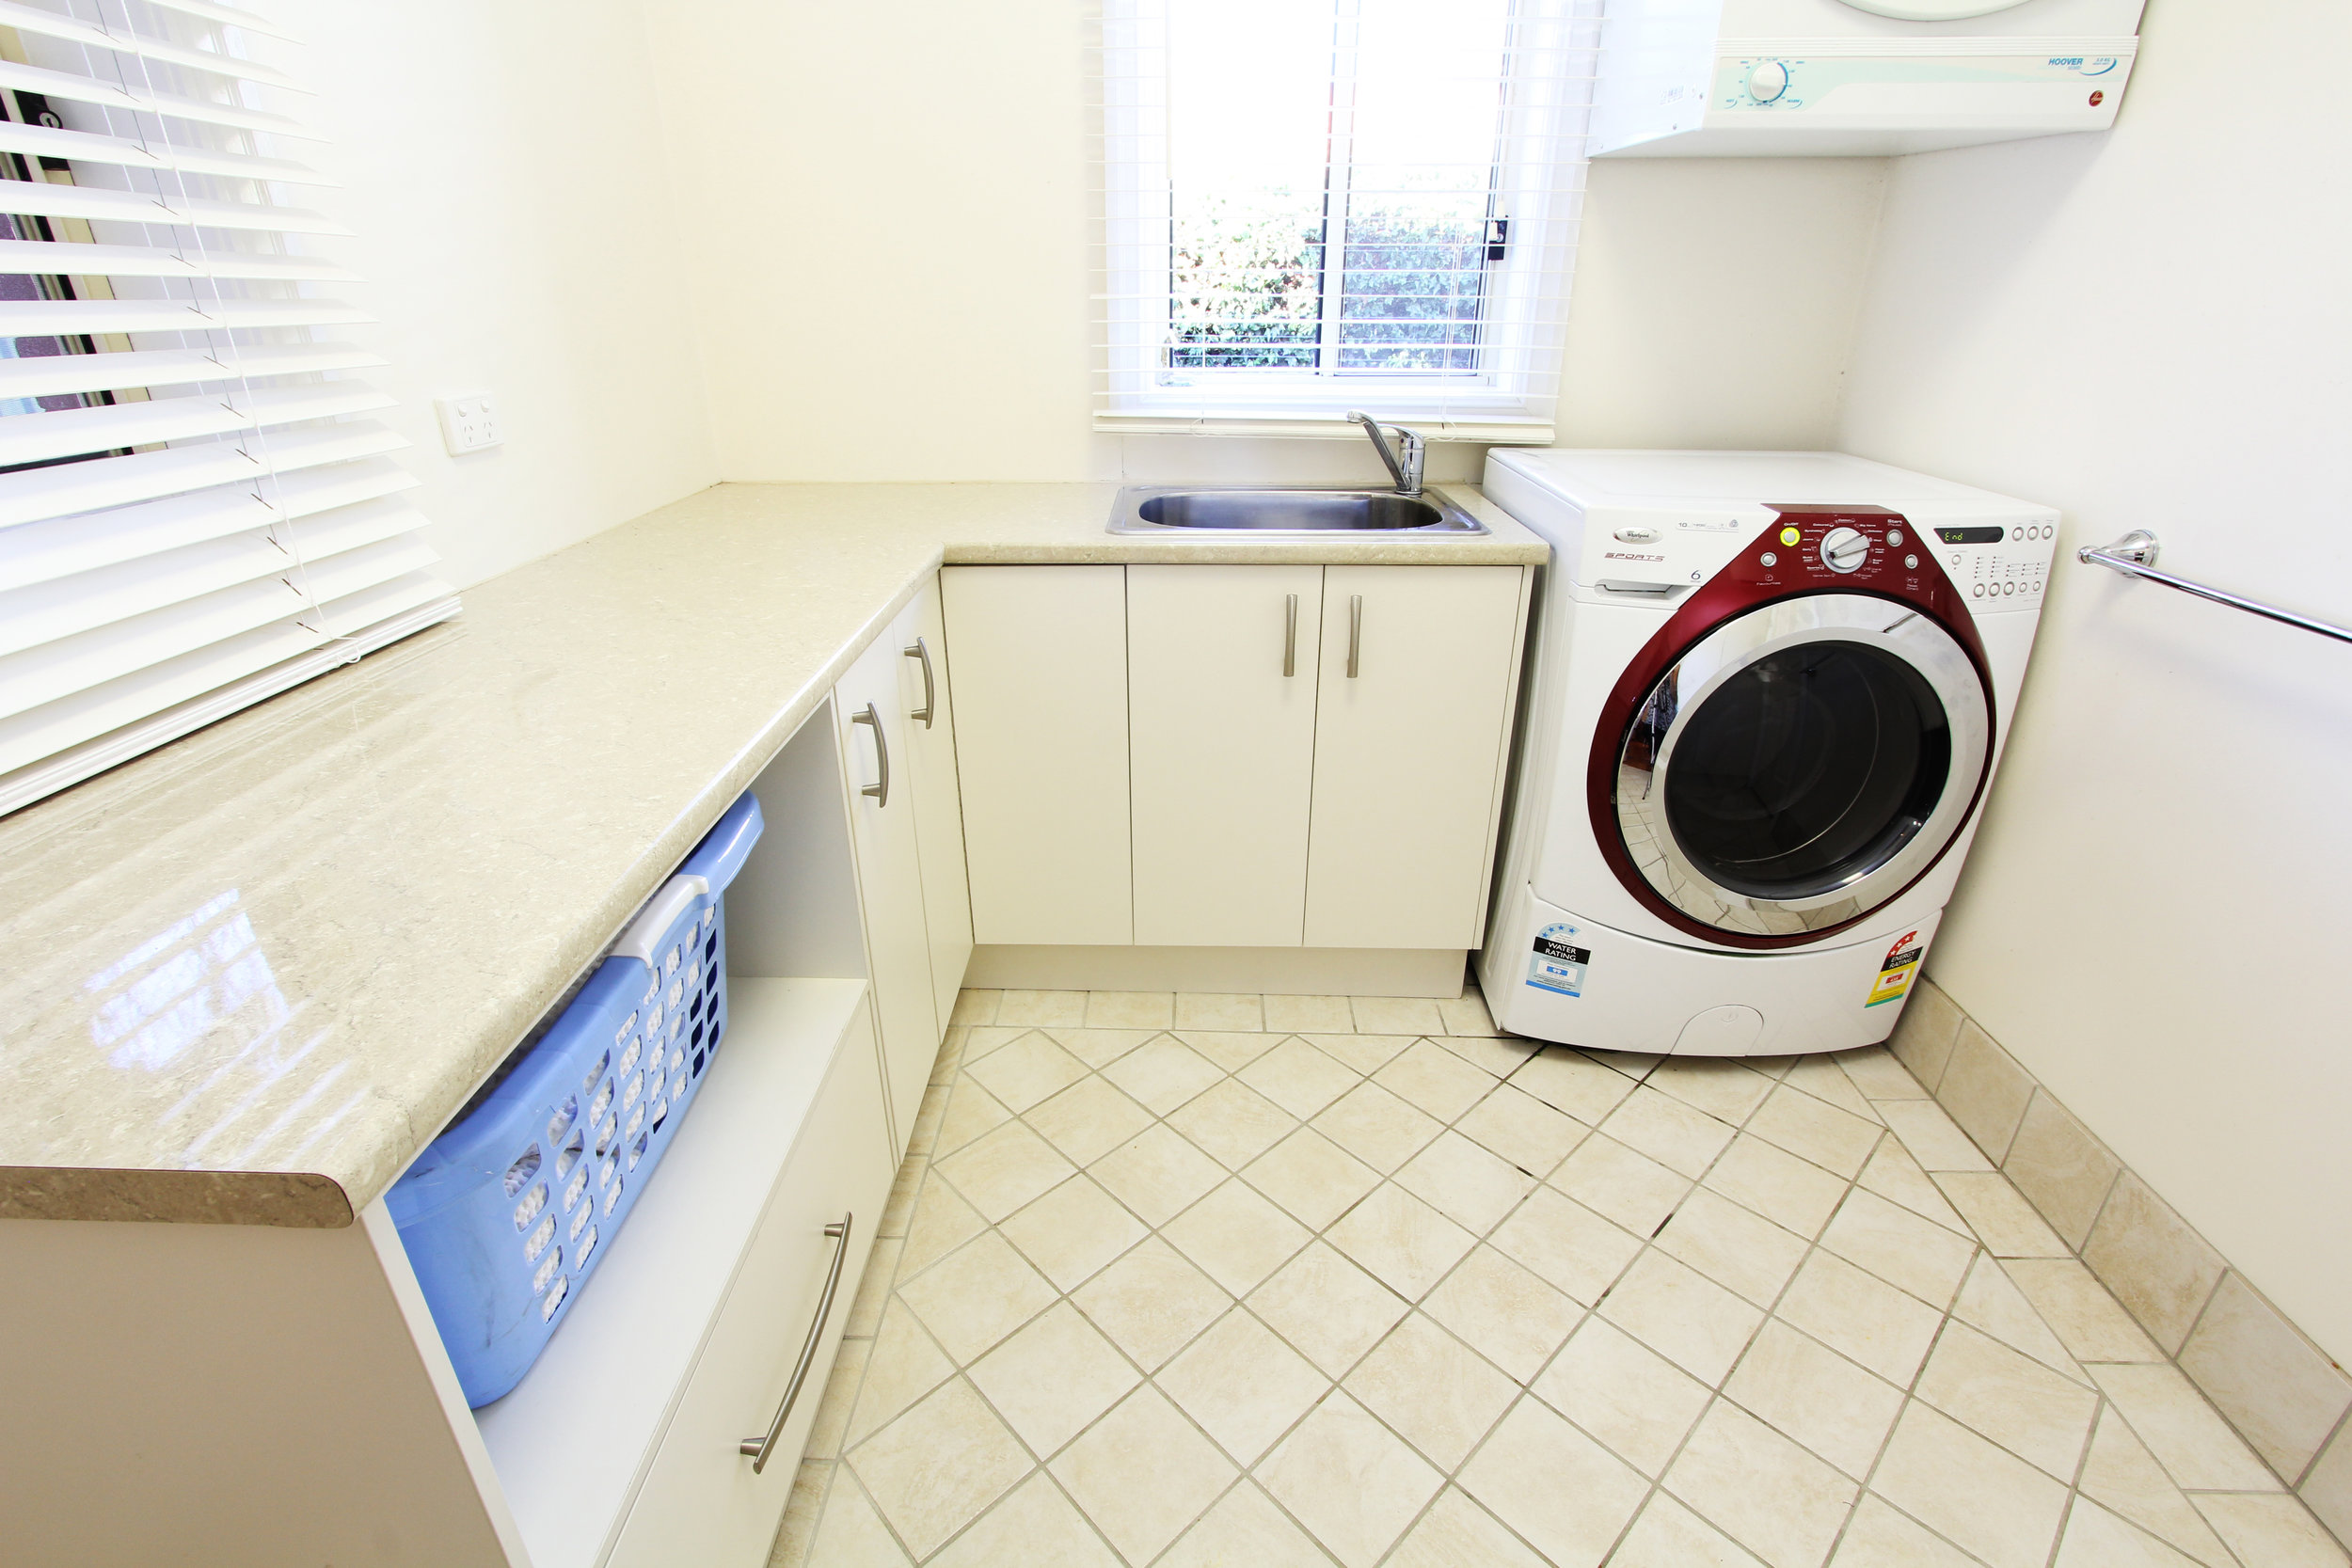 LAUNDRY - Practical Laundry Designs